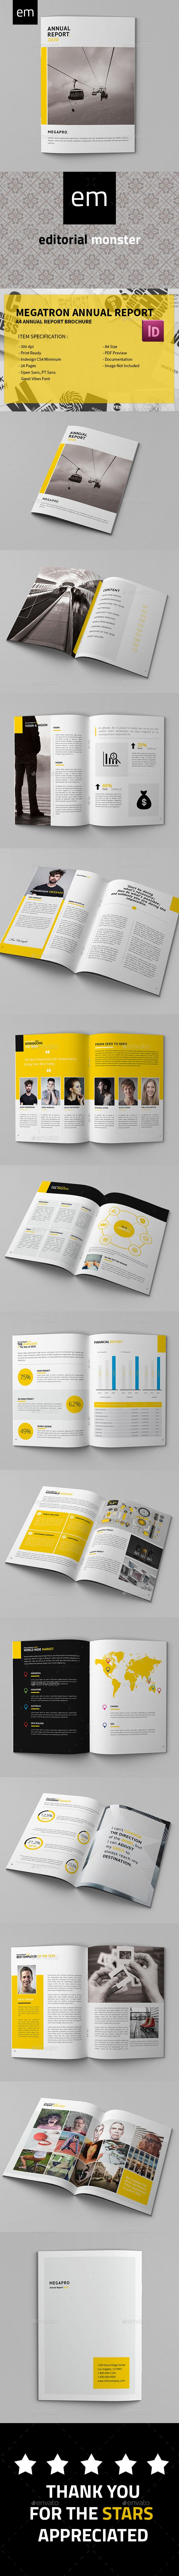 Megatron - Annual Report | Annual reports, Template and Brochures